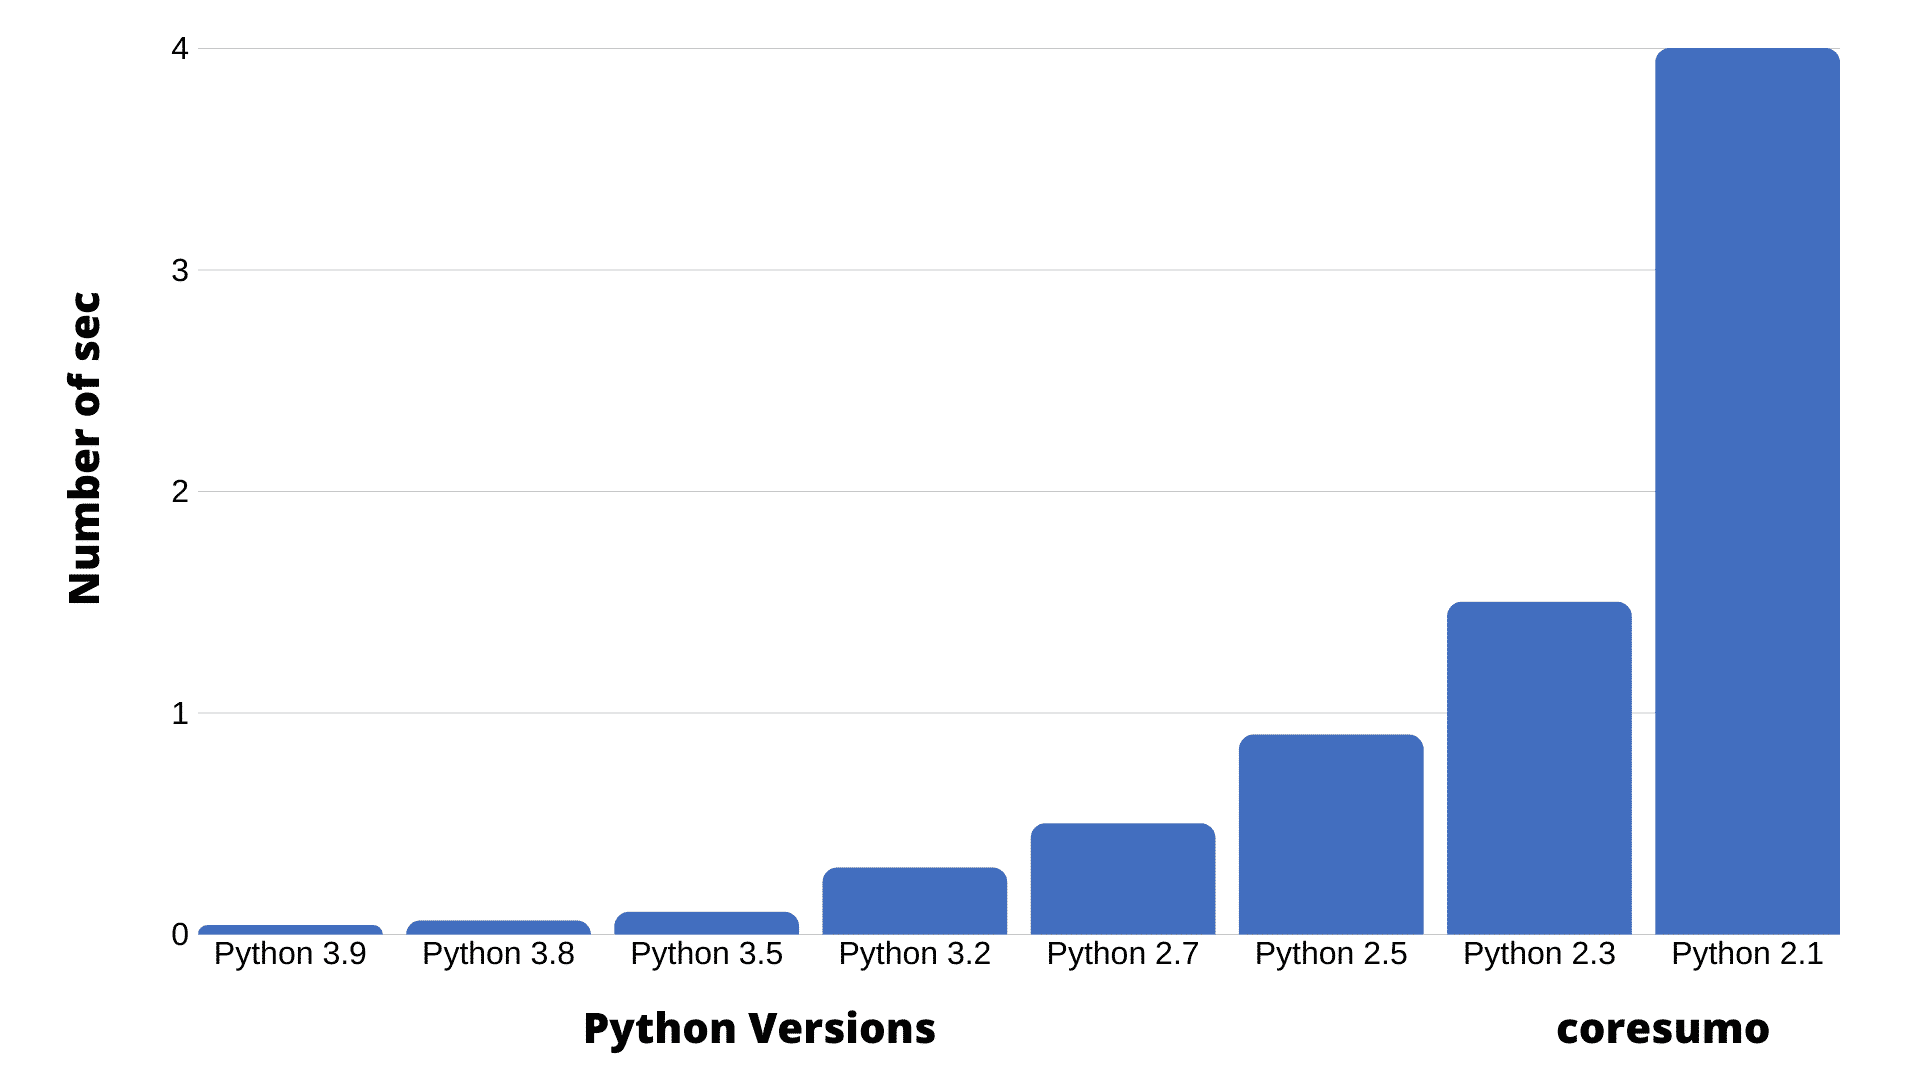 What is Python 3.9 benchmark and Python 3.9 performance